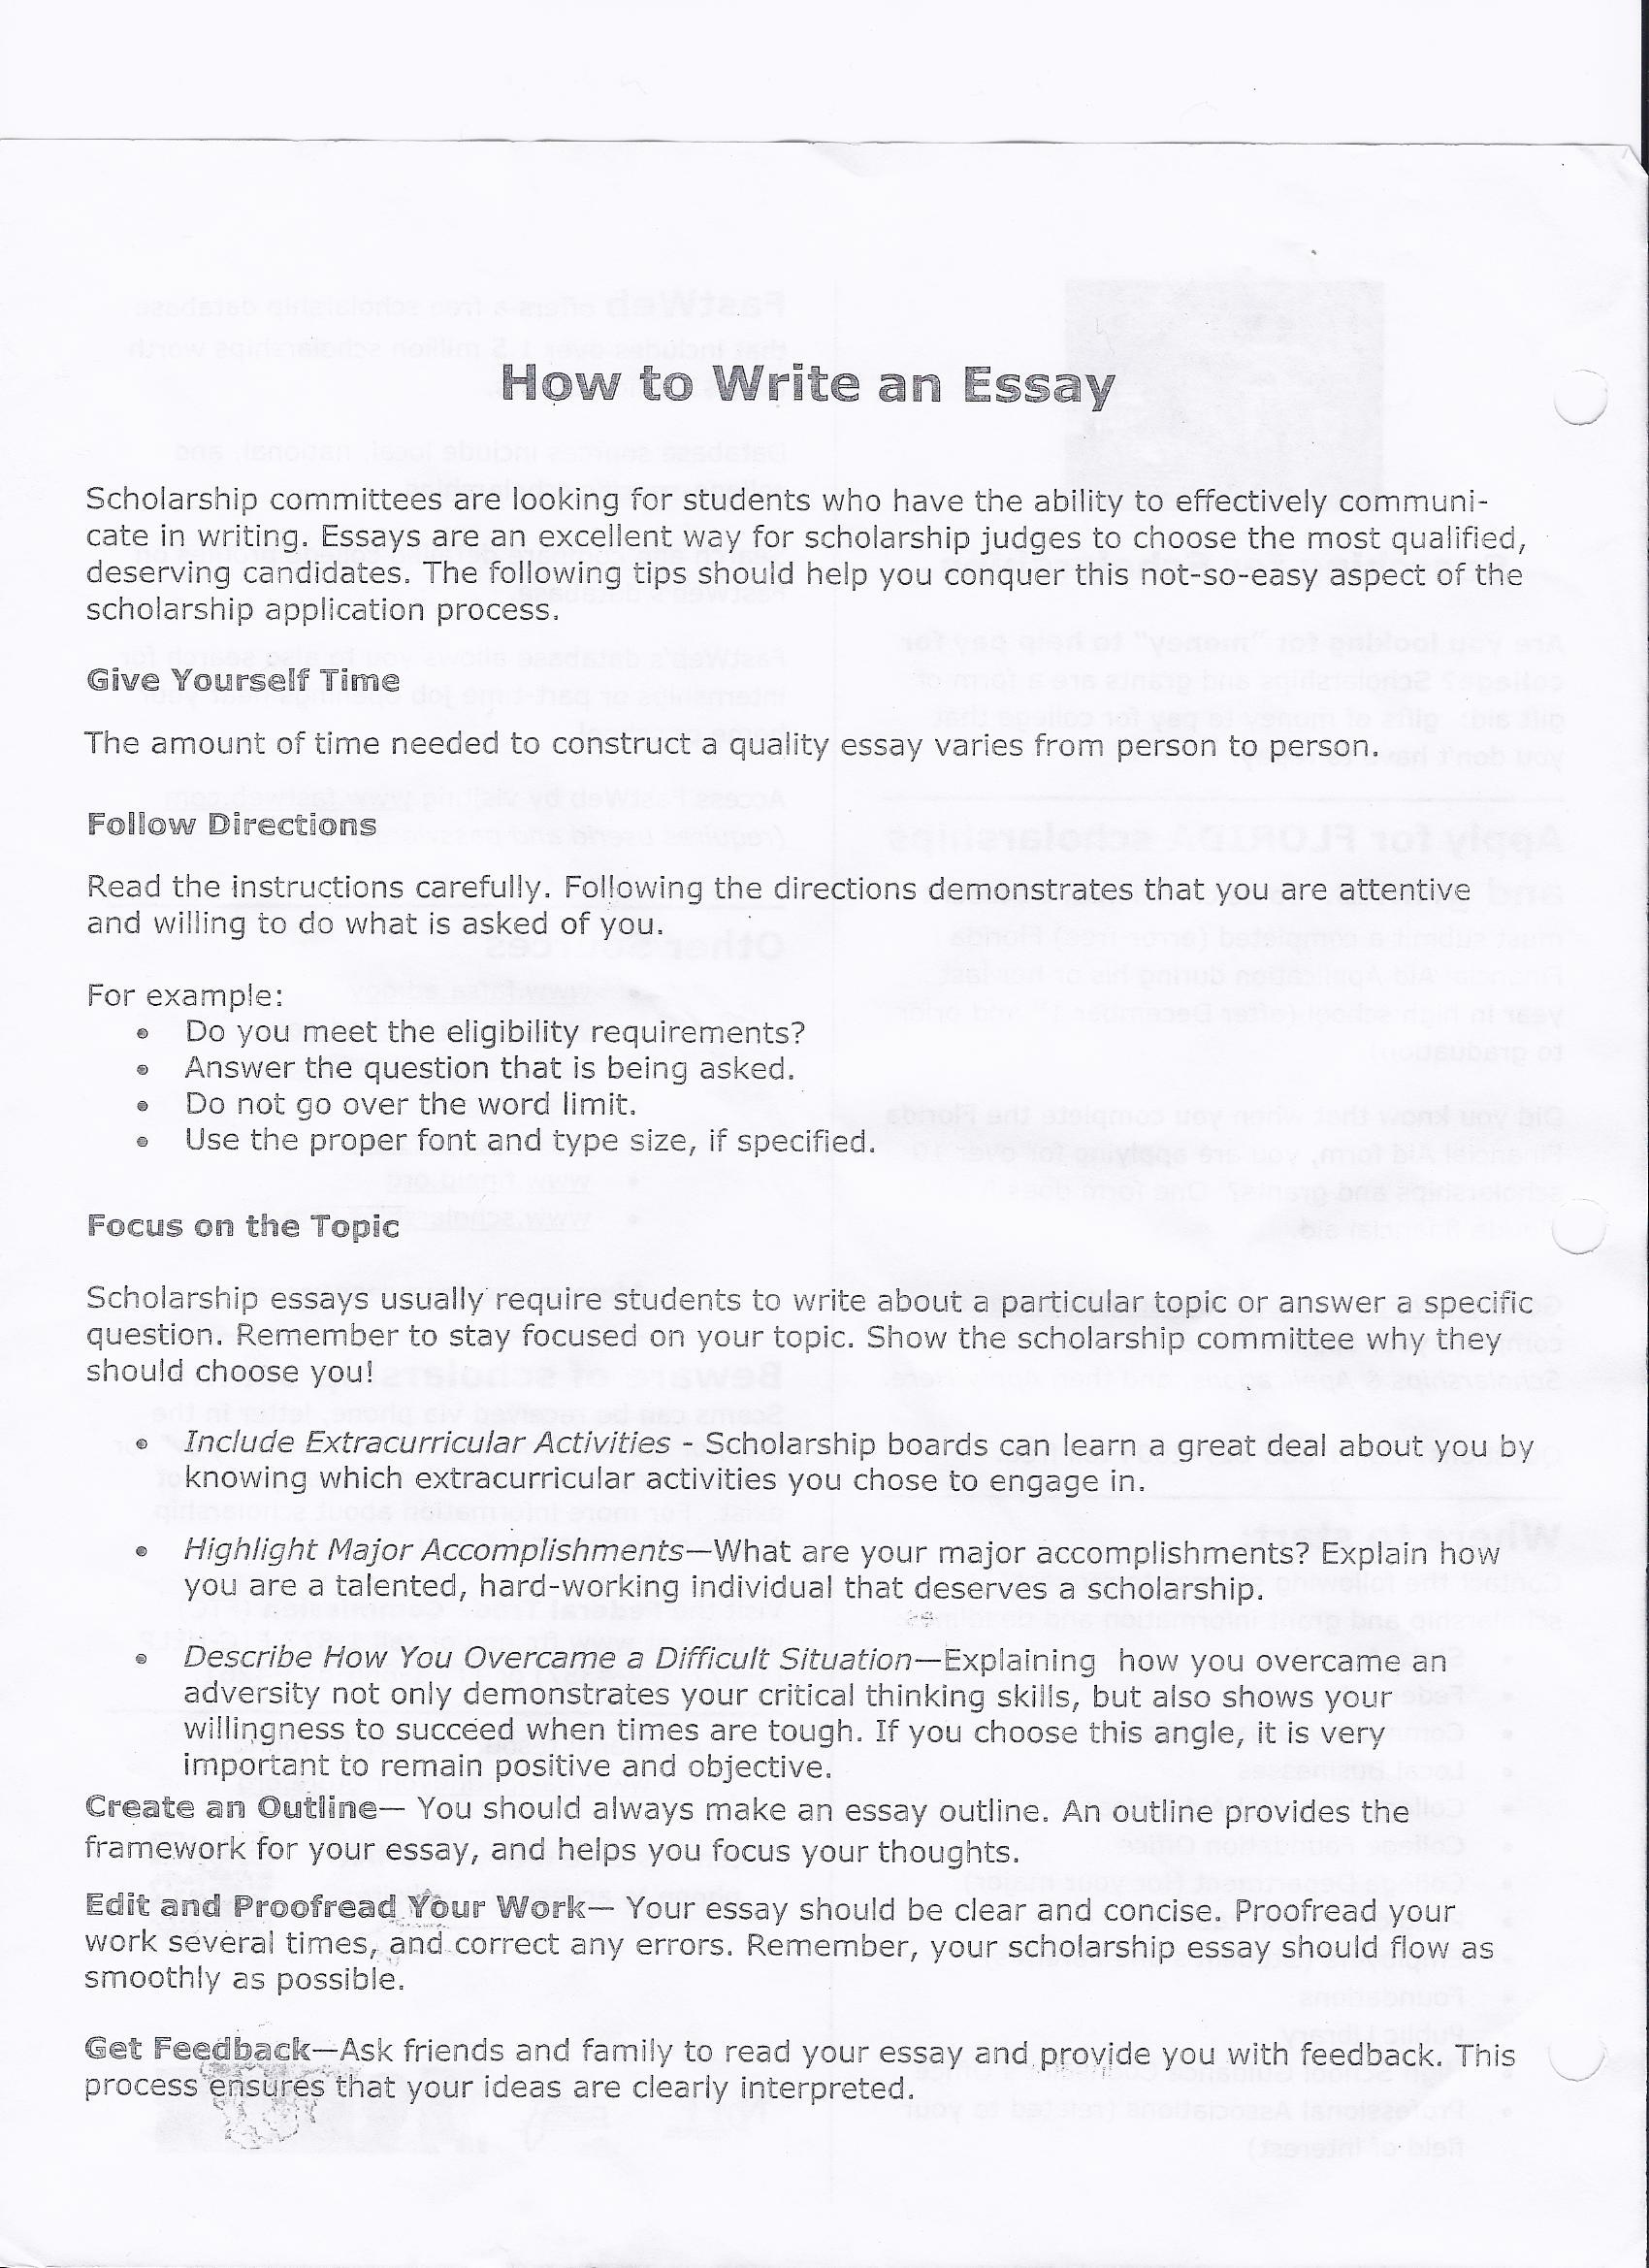 How to write a visual analysis essay